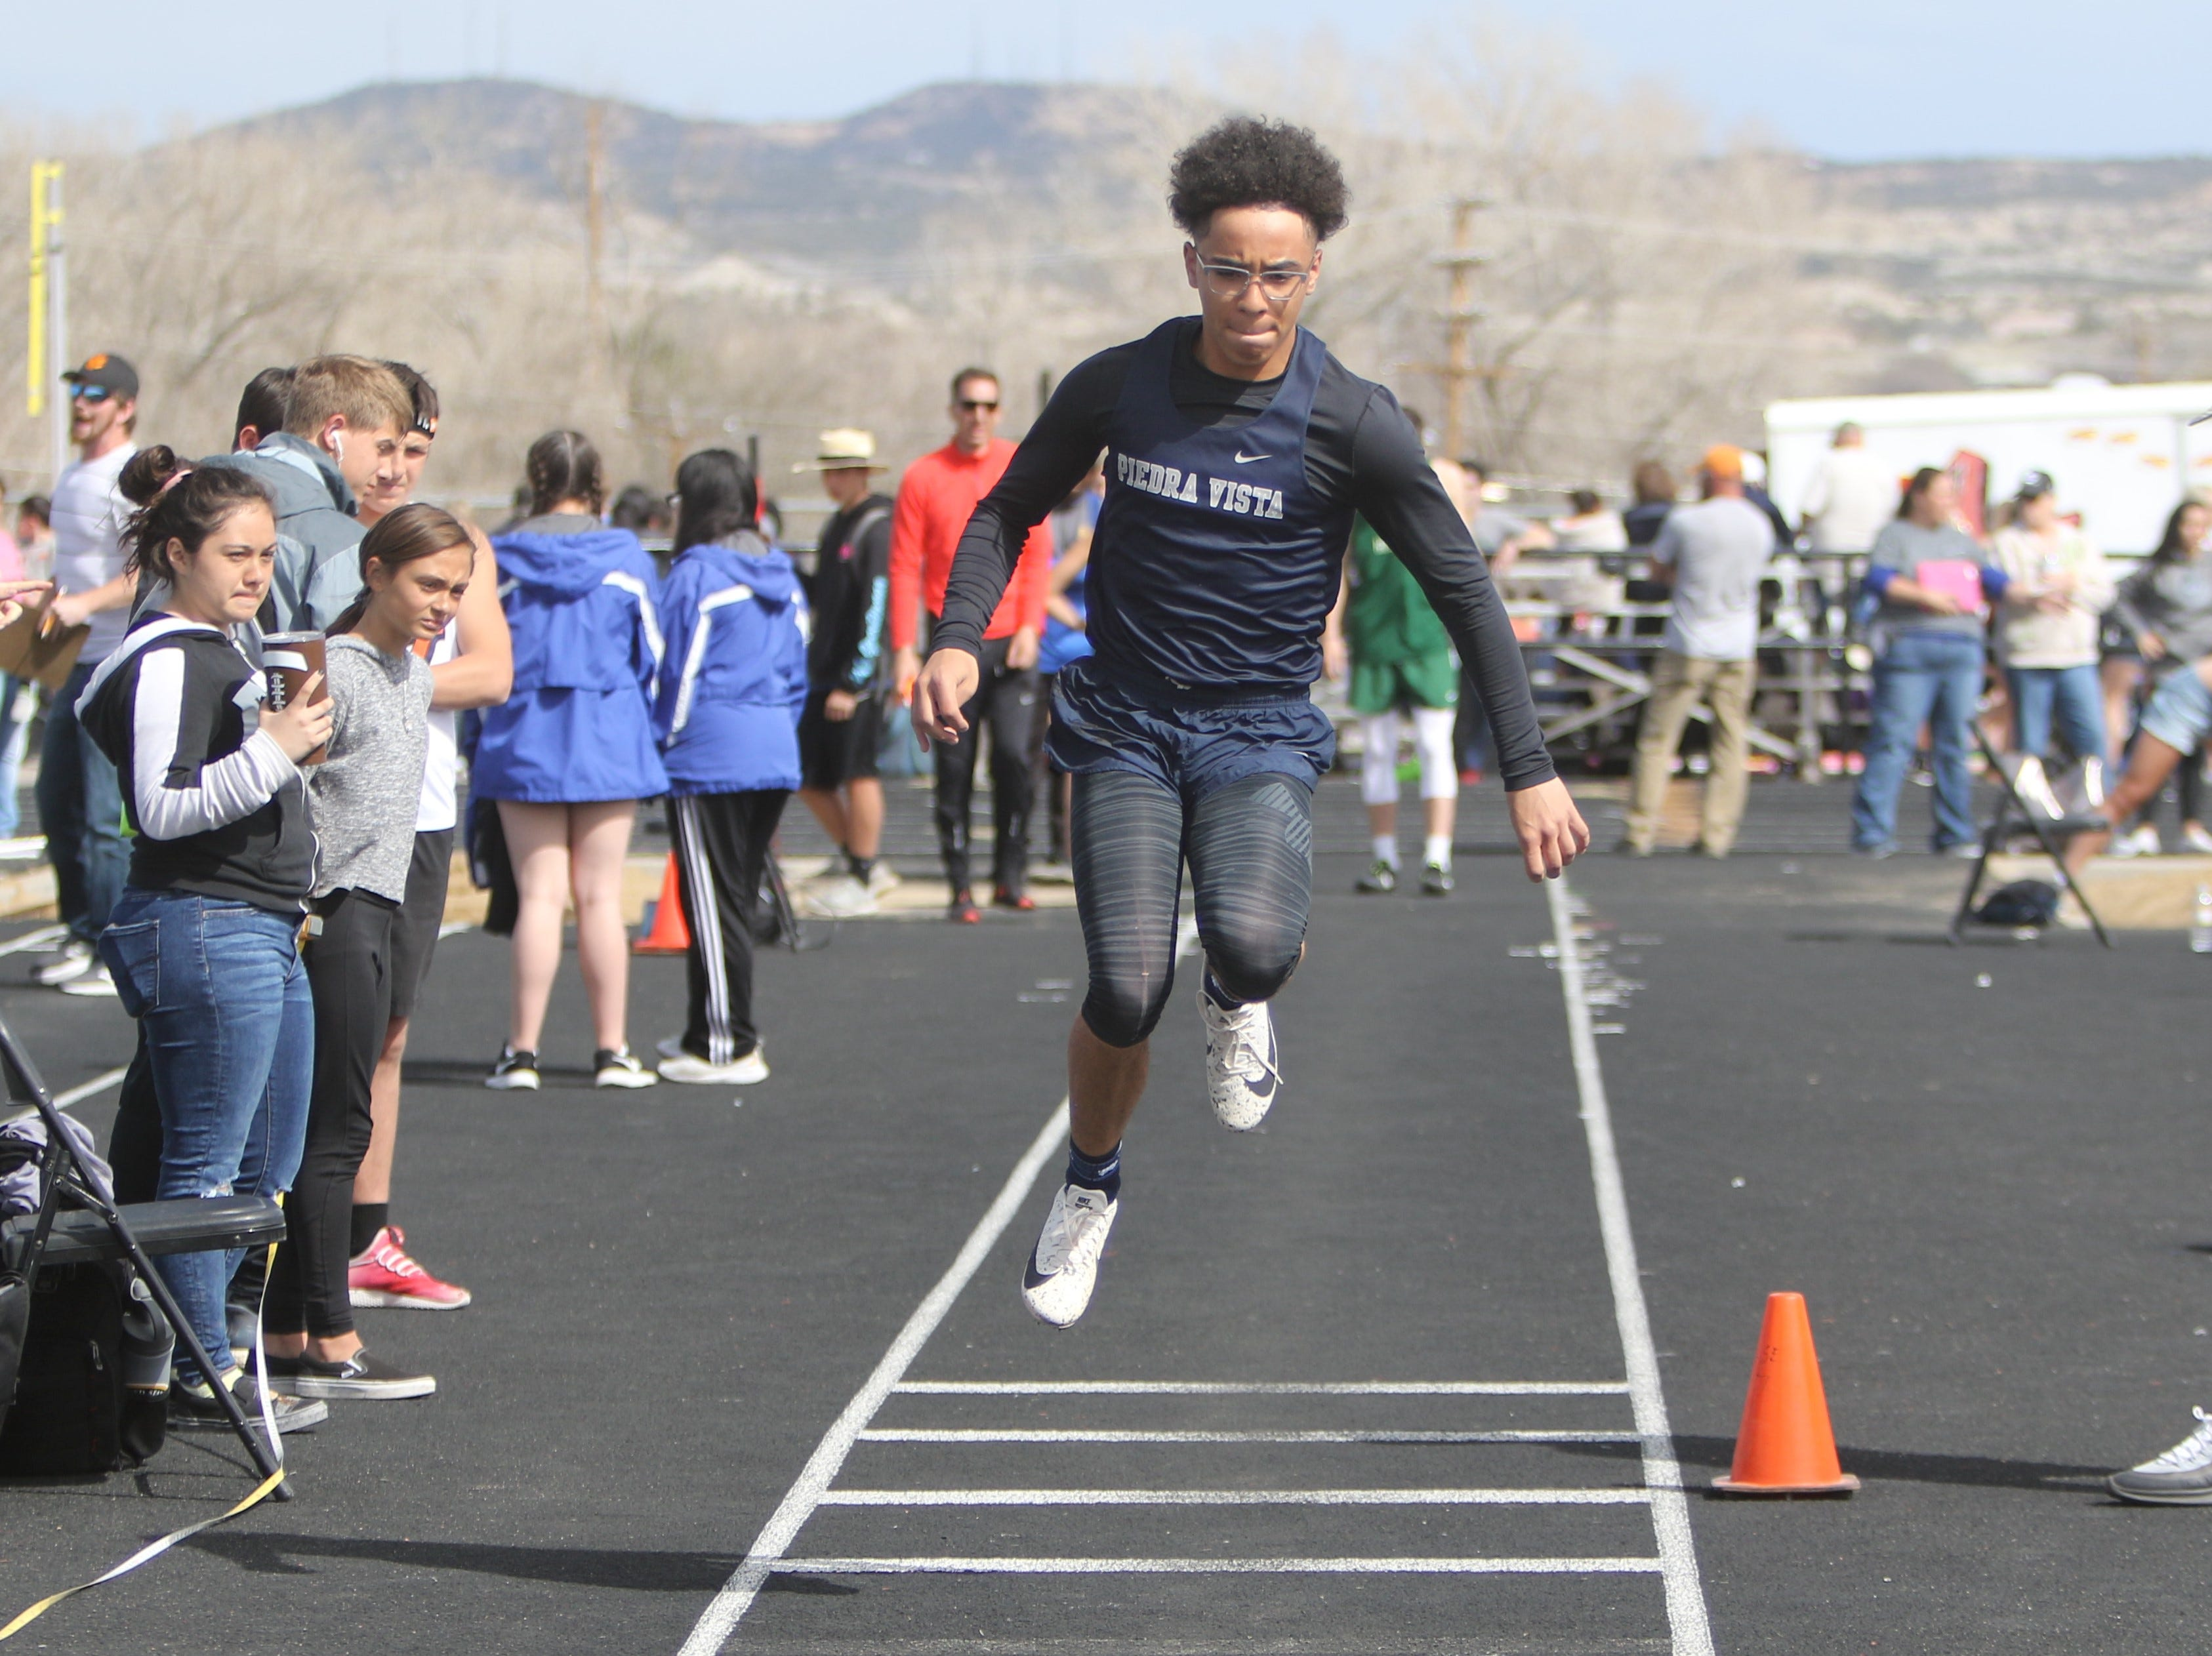 Piedra Vista's Connor King takes his first leap in the boys triple jump during Friday's Top Gun Invitational at Aztec.